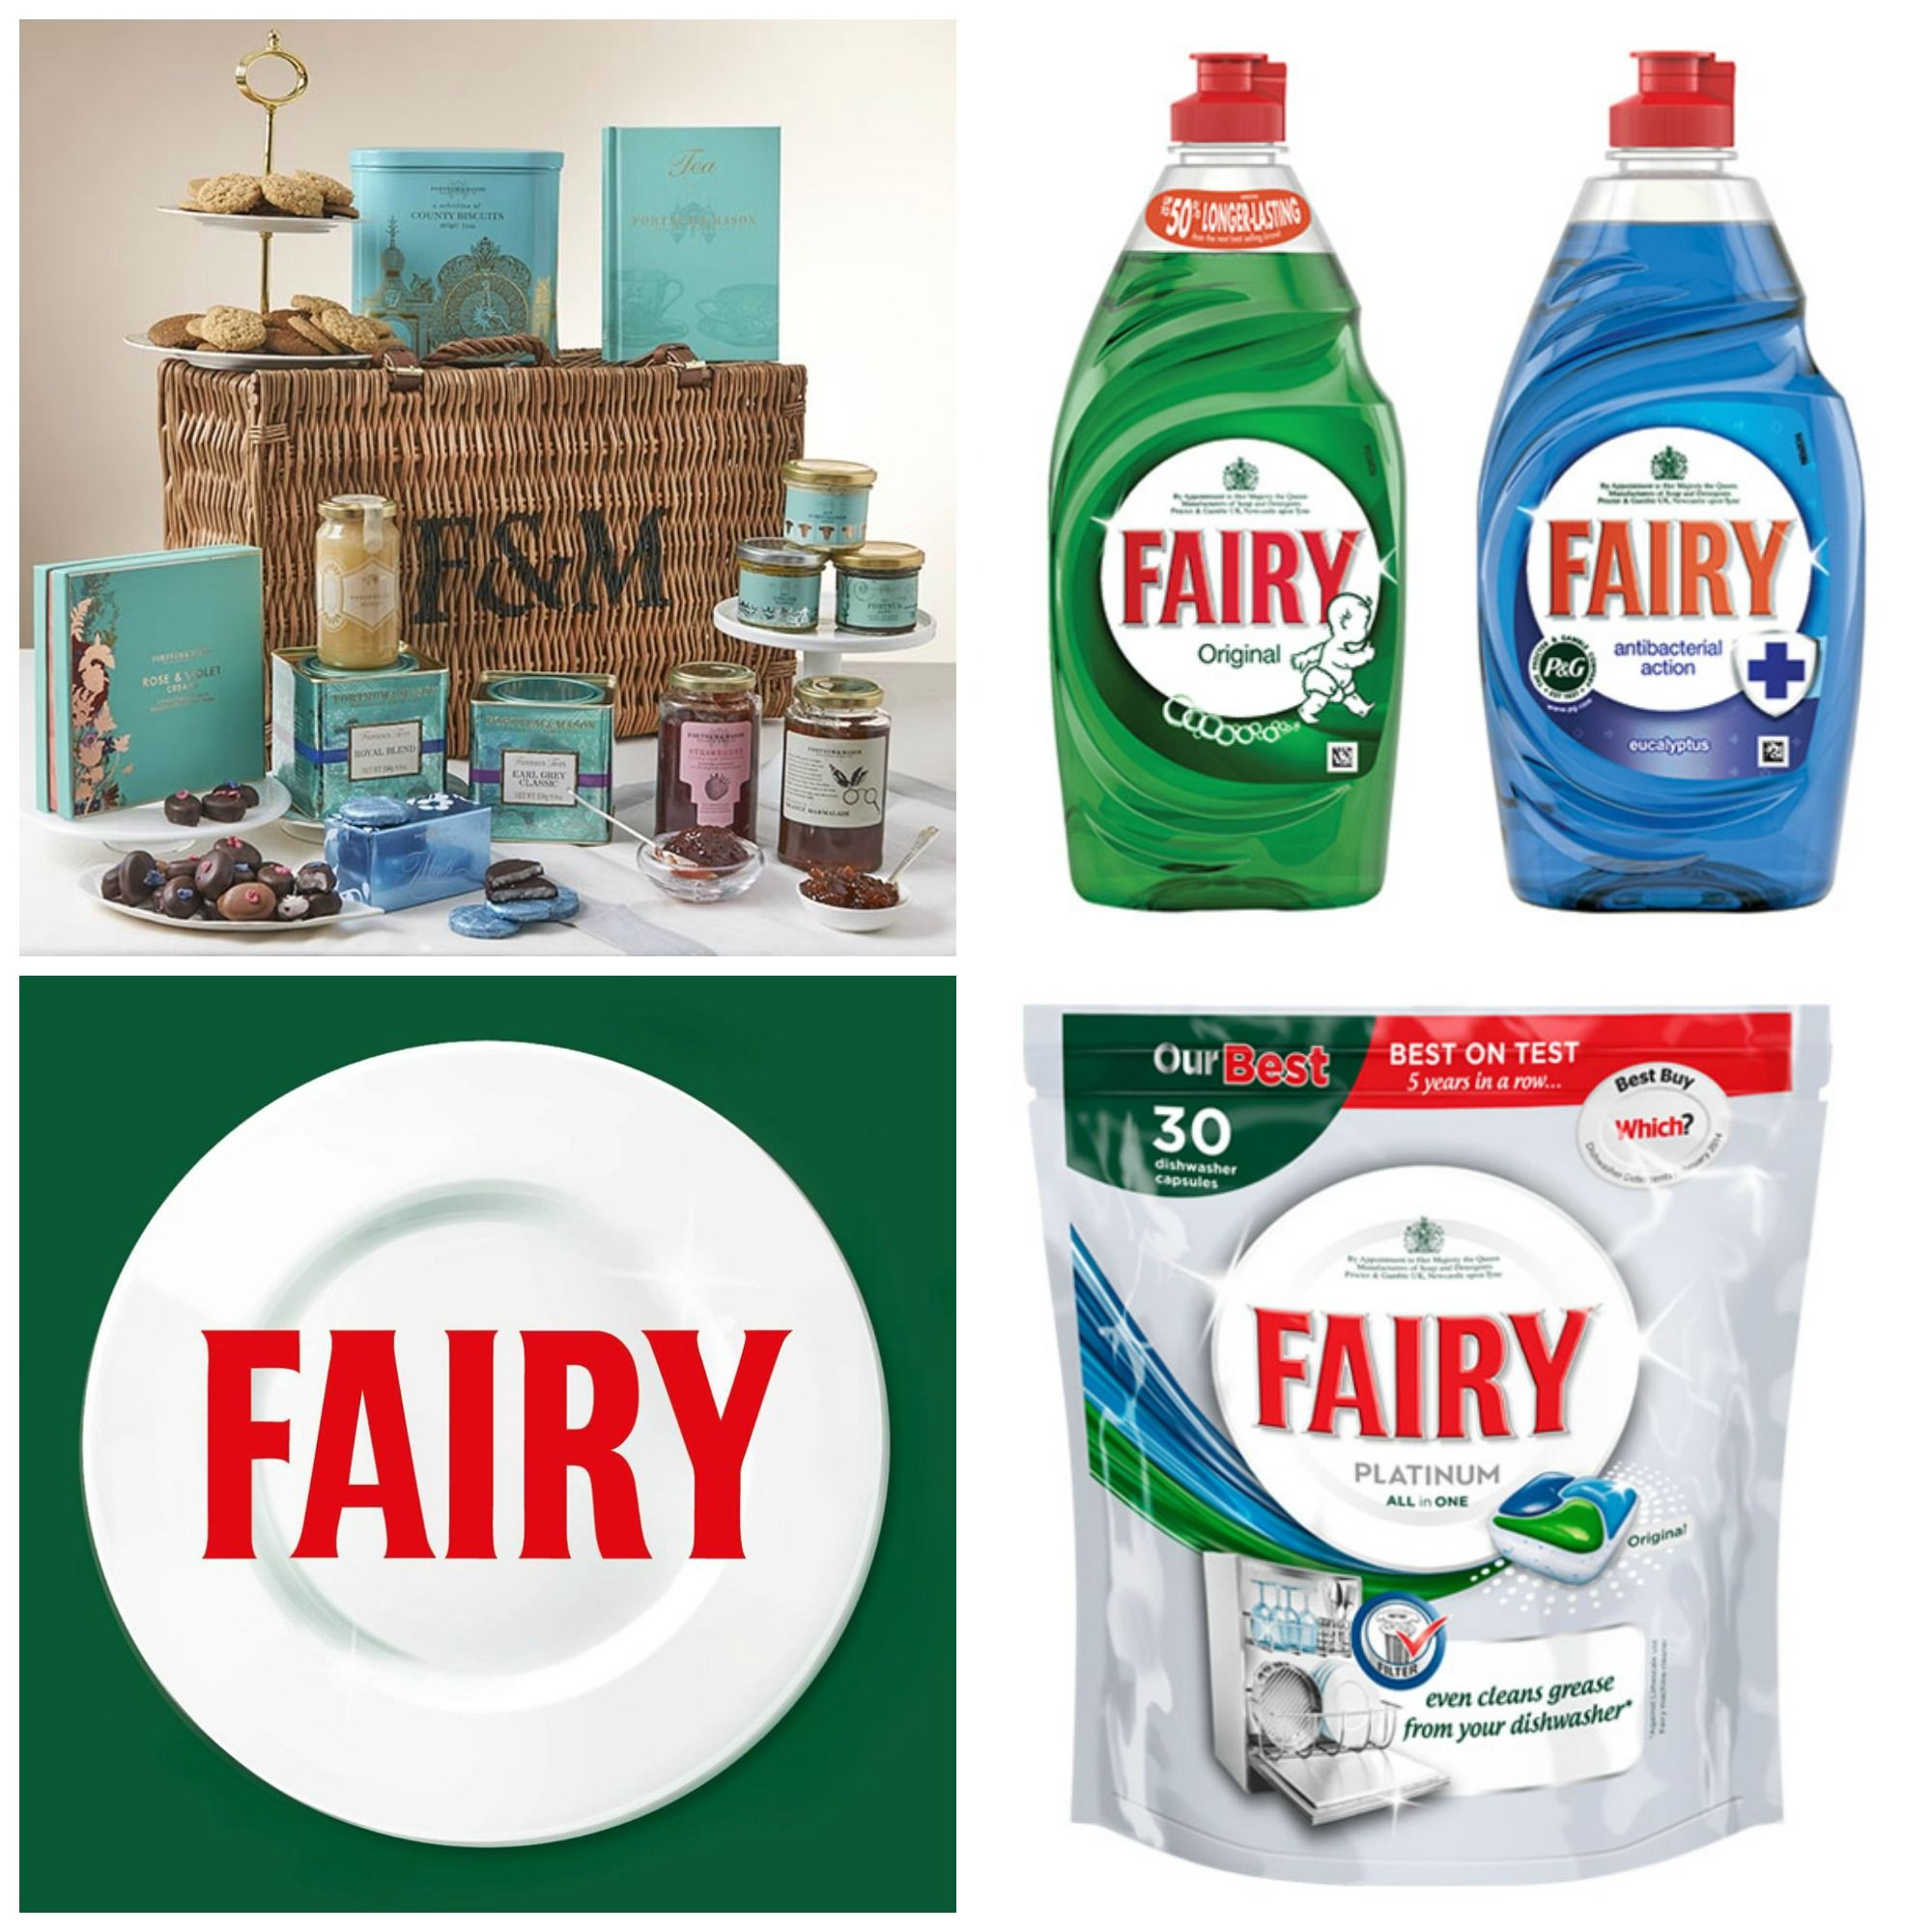 Competition To Win Year S Supply Of Fairy And Luxury Fortnum